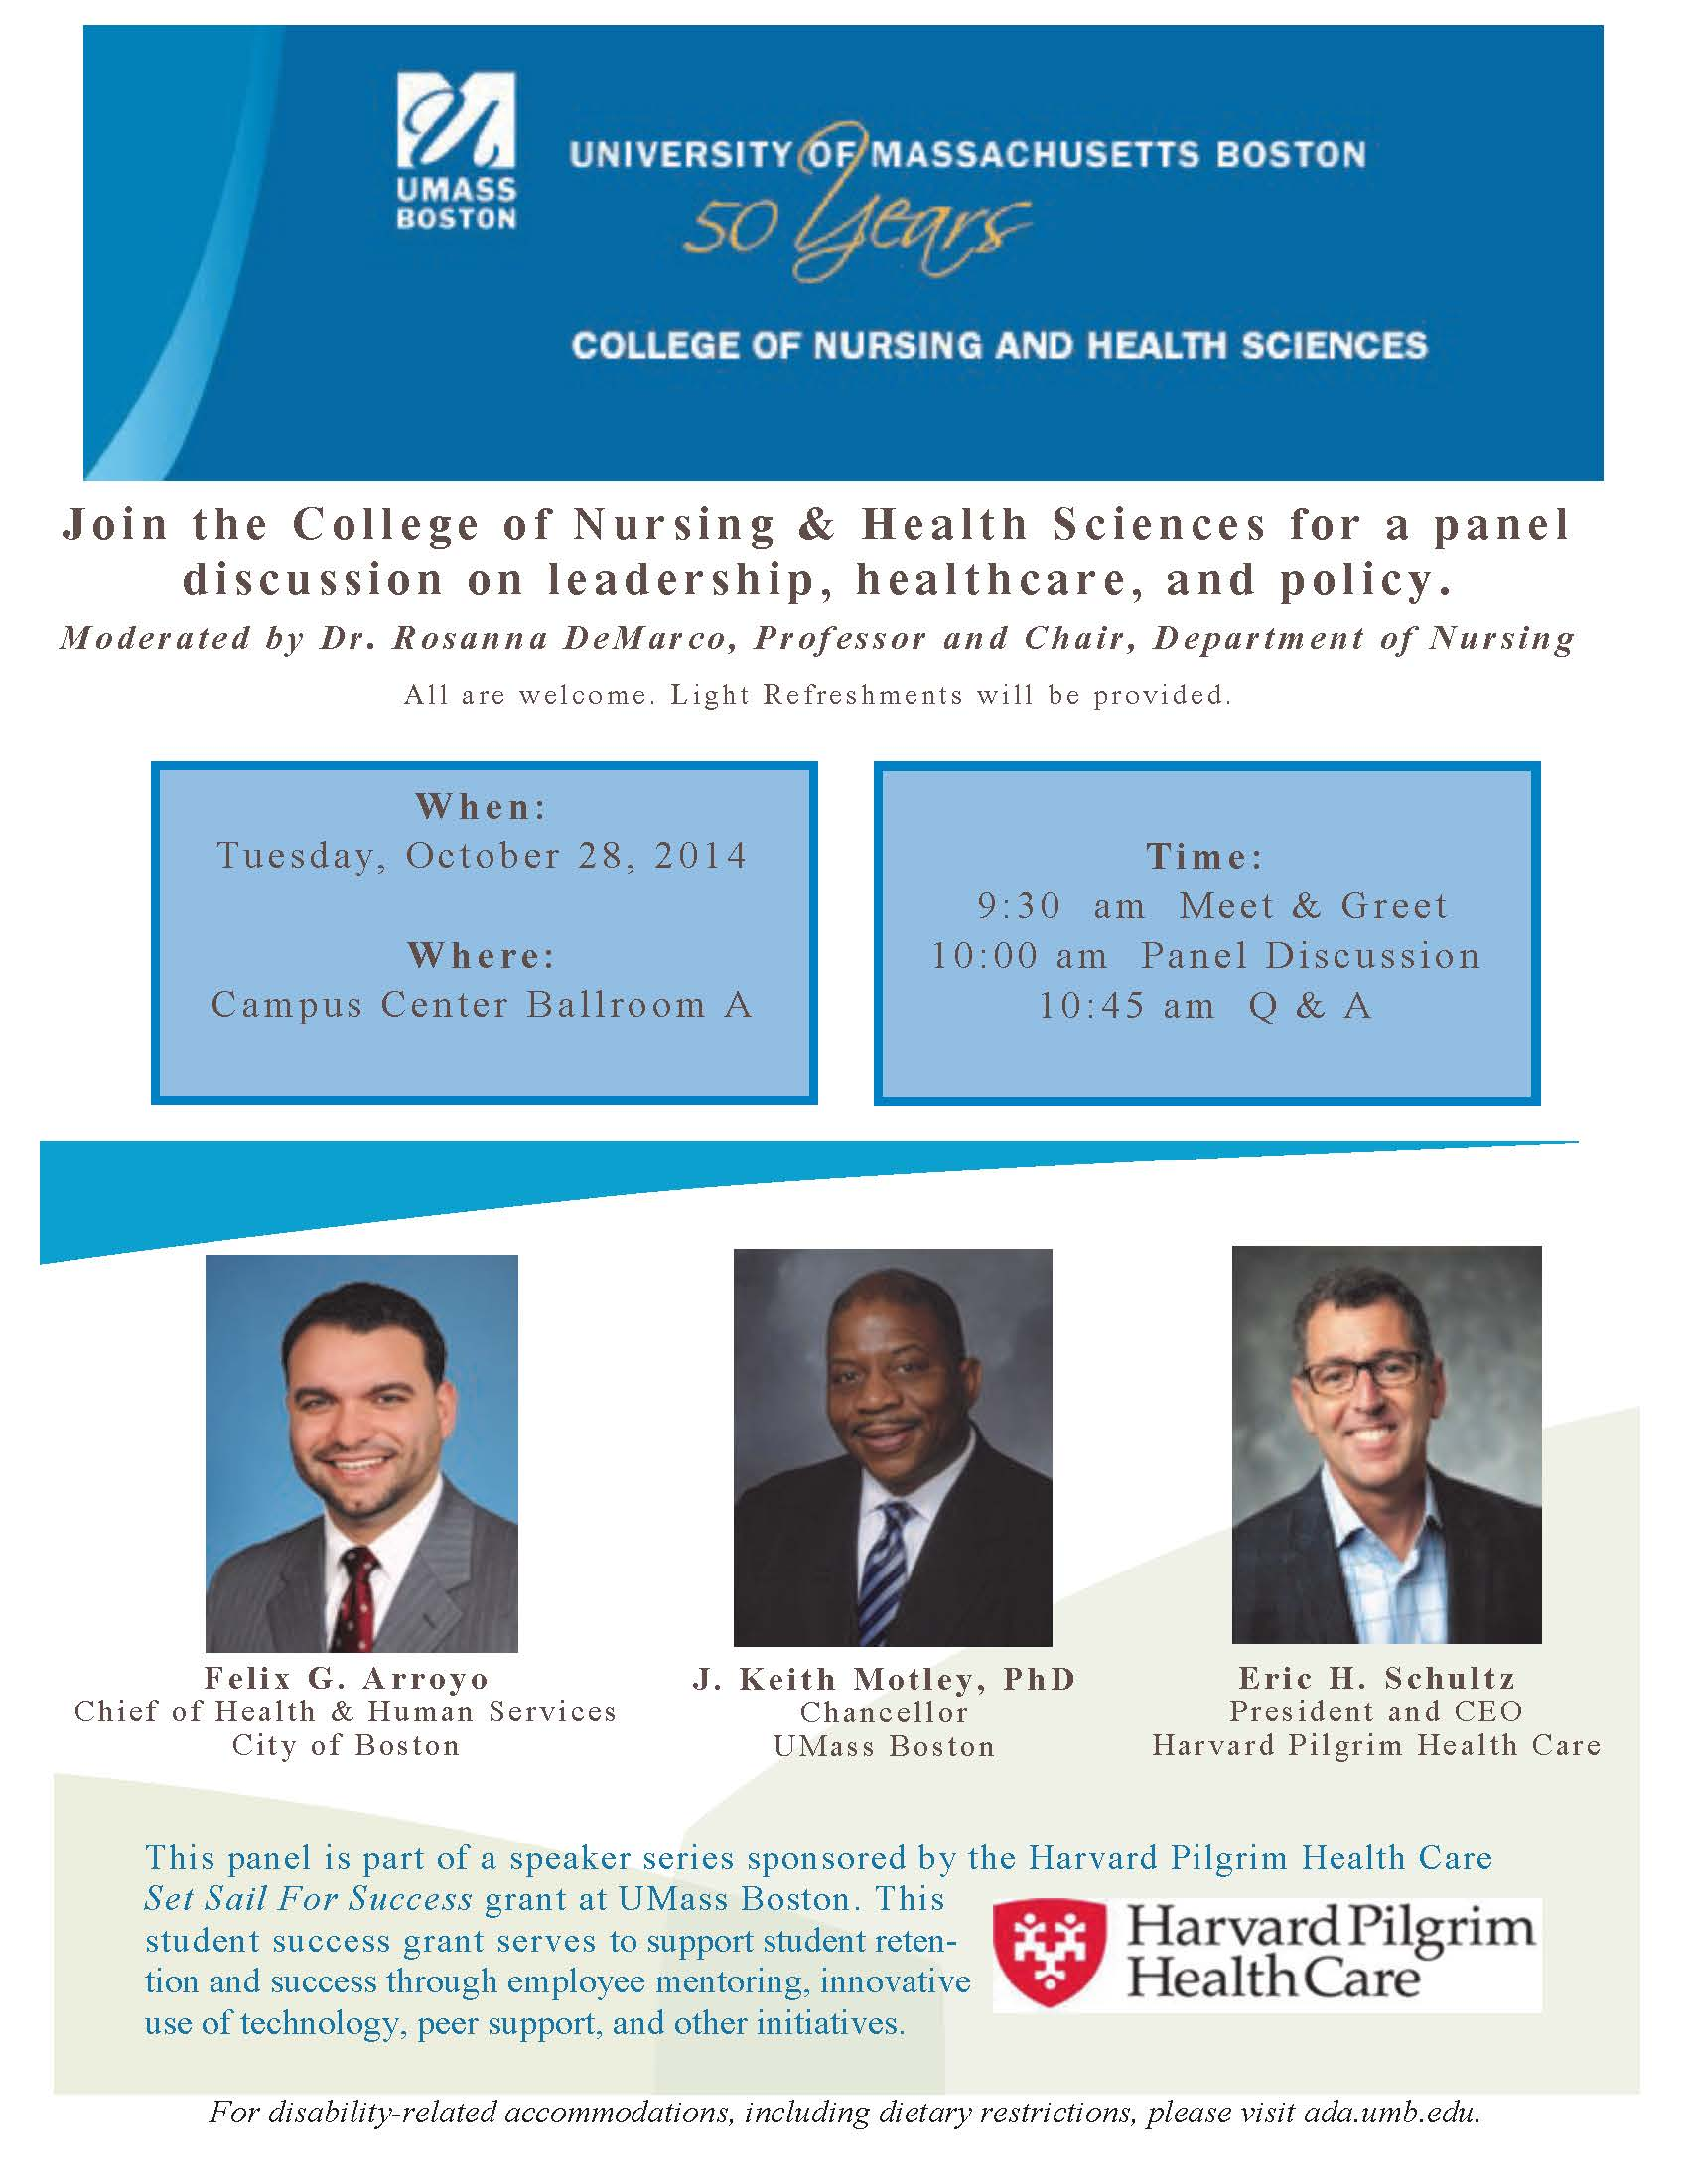 Panel Discussion on Leadership, Healthcare, and Policy